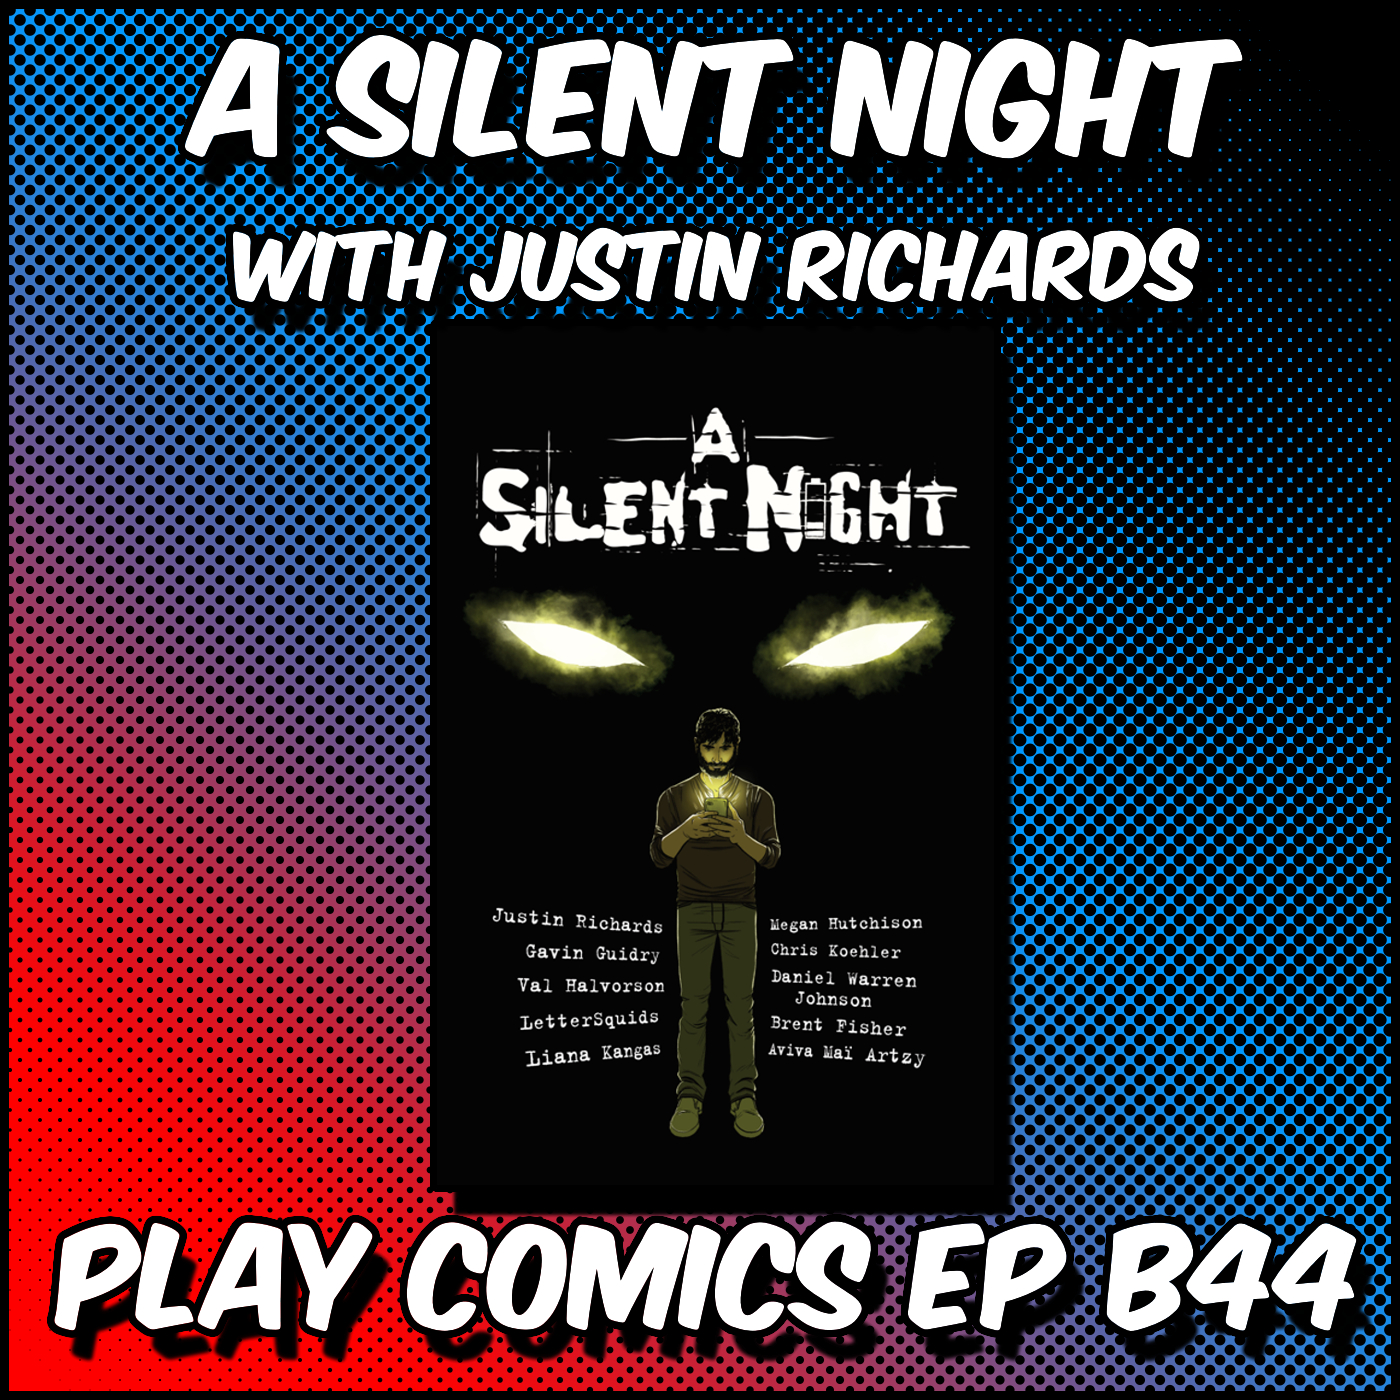 A Silent Night with Justin Richards